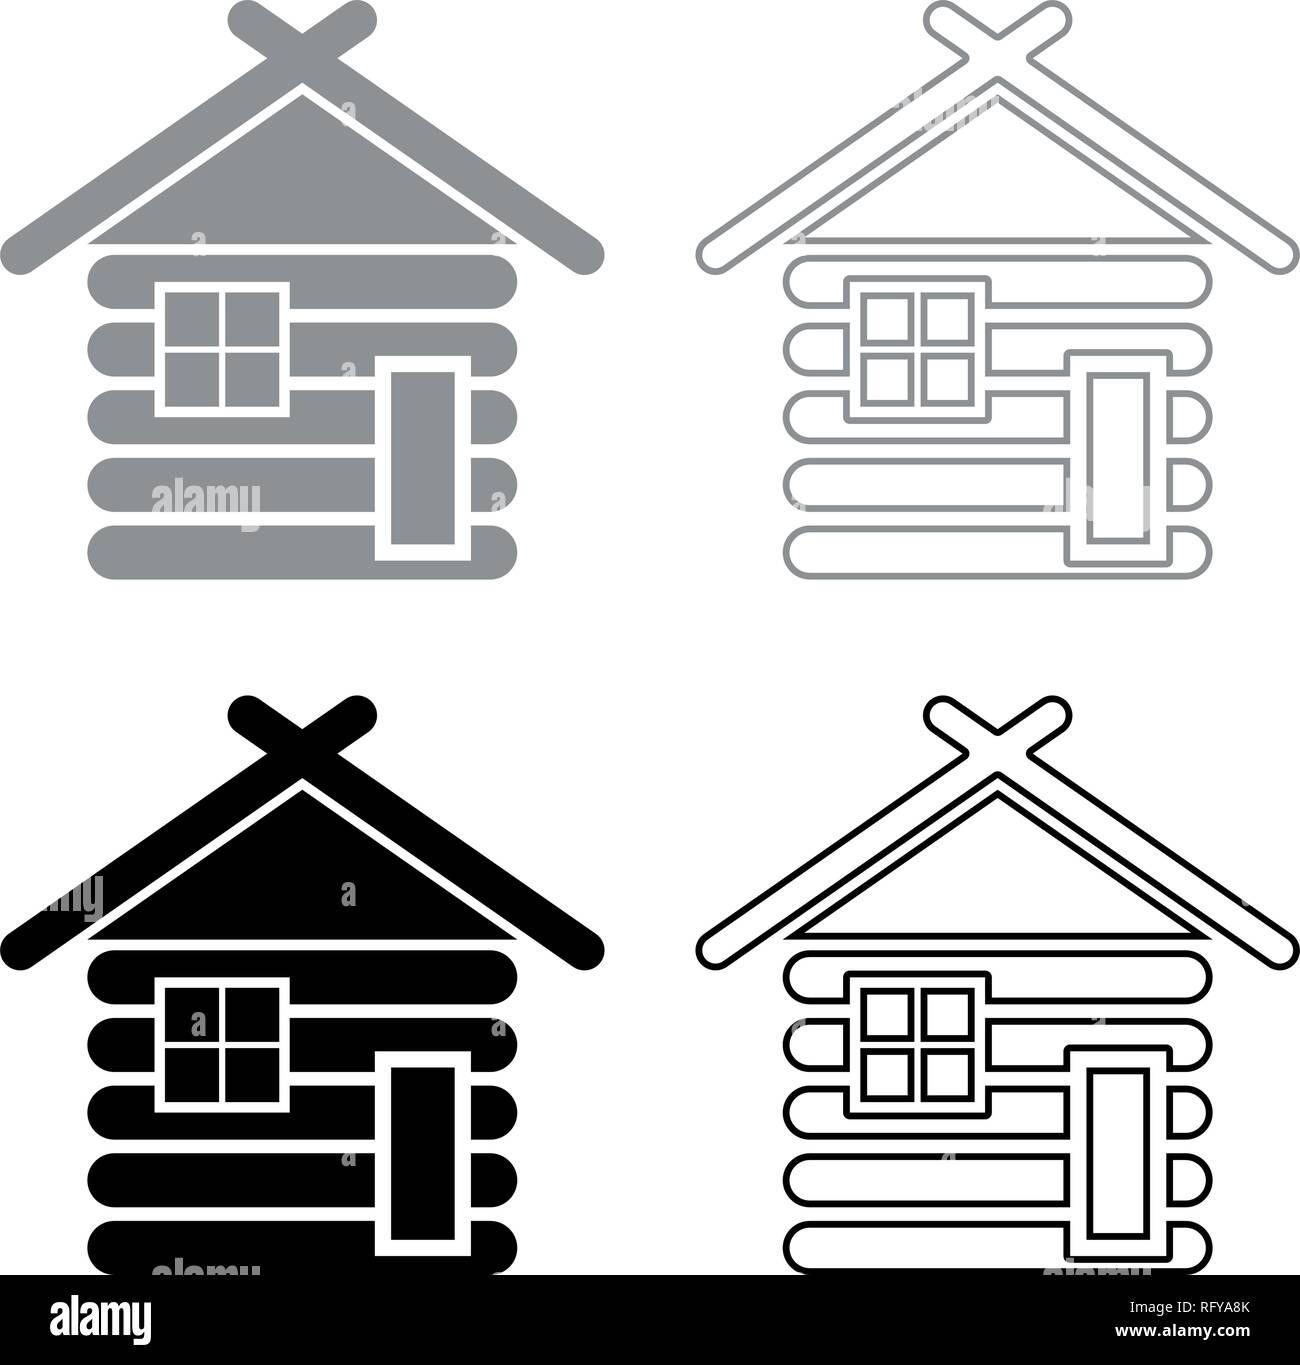 Wooden house Barn with wood Modular log cabins Wood cabin modular homes icon set grey black color vector I outline flat style simple image - Stock Vector